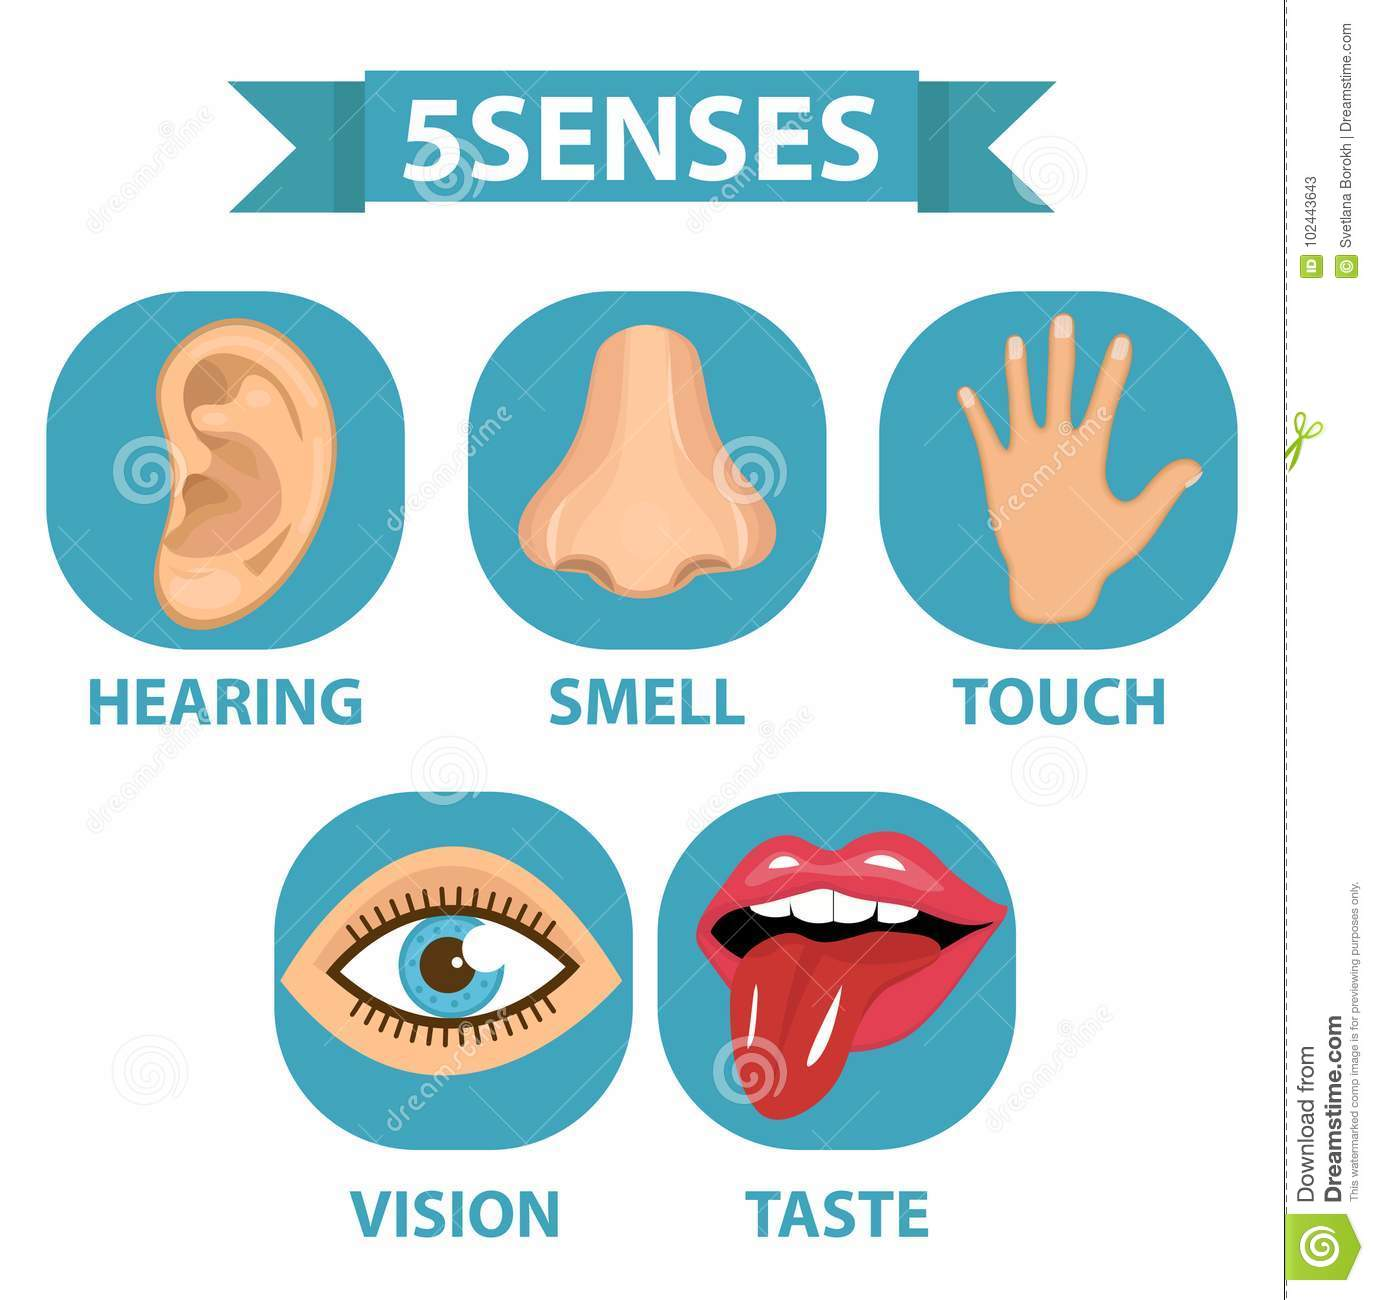 5 senses icon set. Touch, smell, hearing, vision, taste. Isolated on white background. Vector illustration.